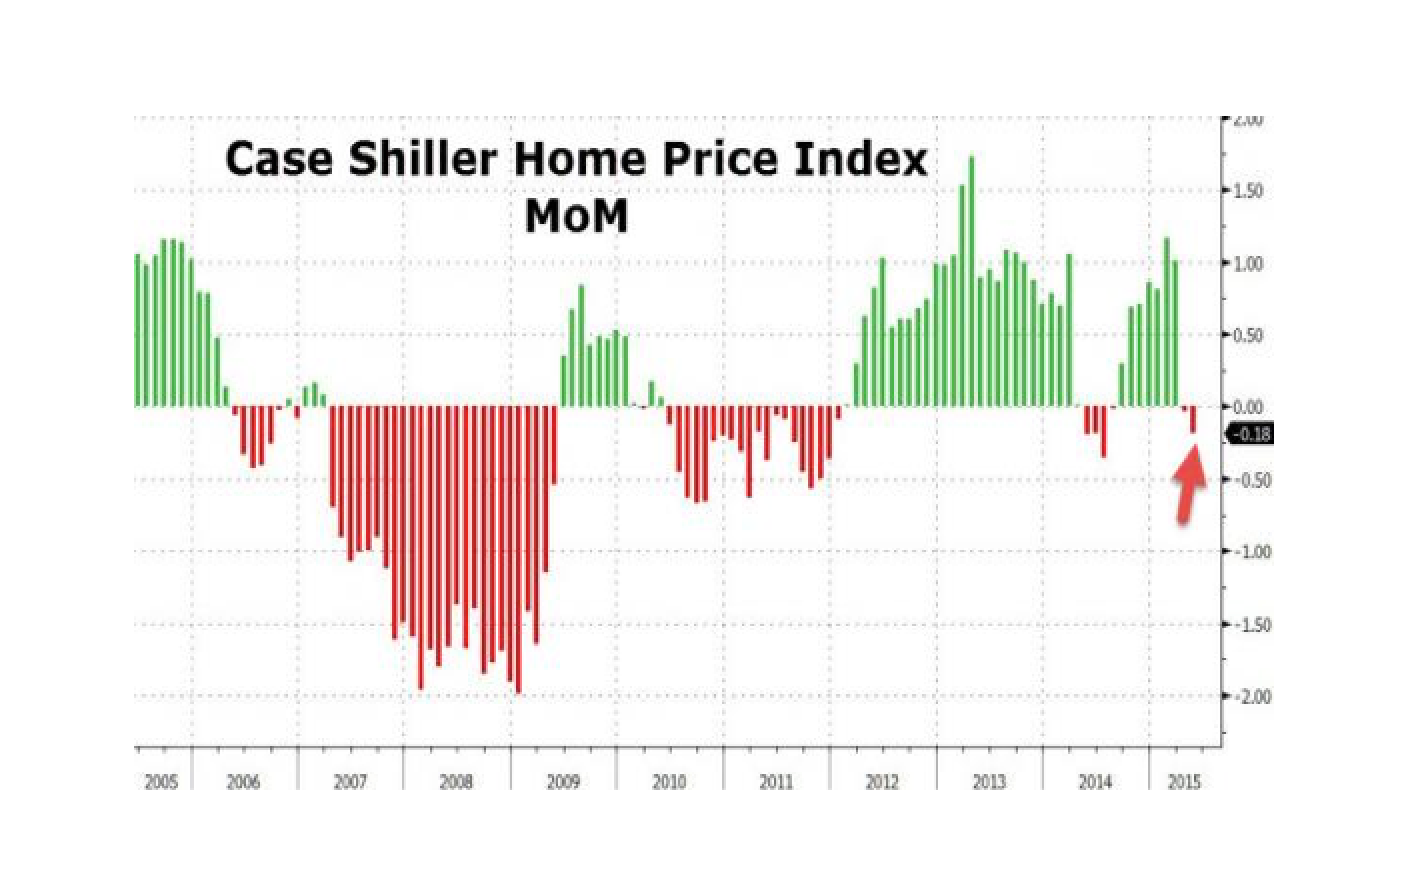 Housing Recovery? Case Shiller Home Prices Tumble Most In 10 Months